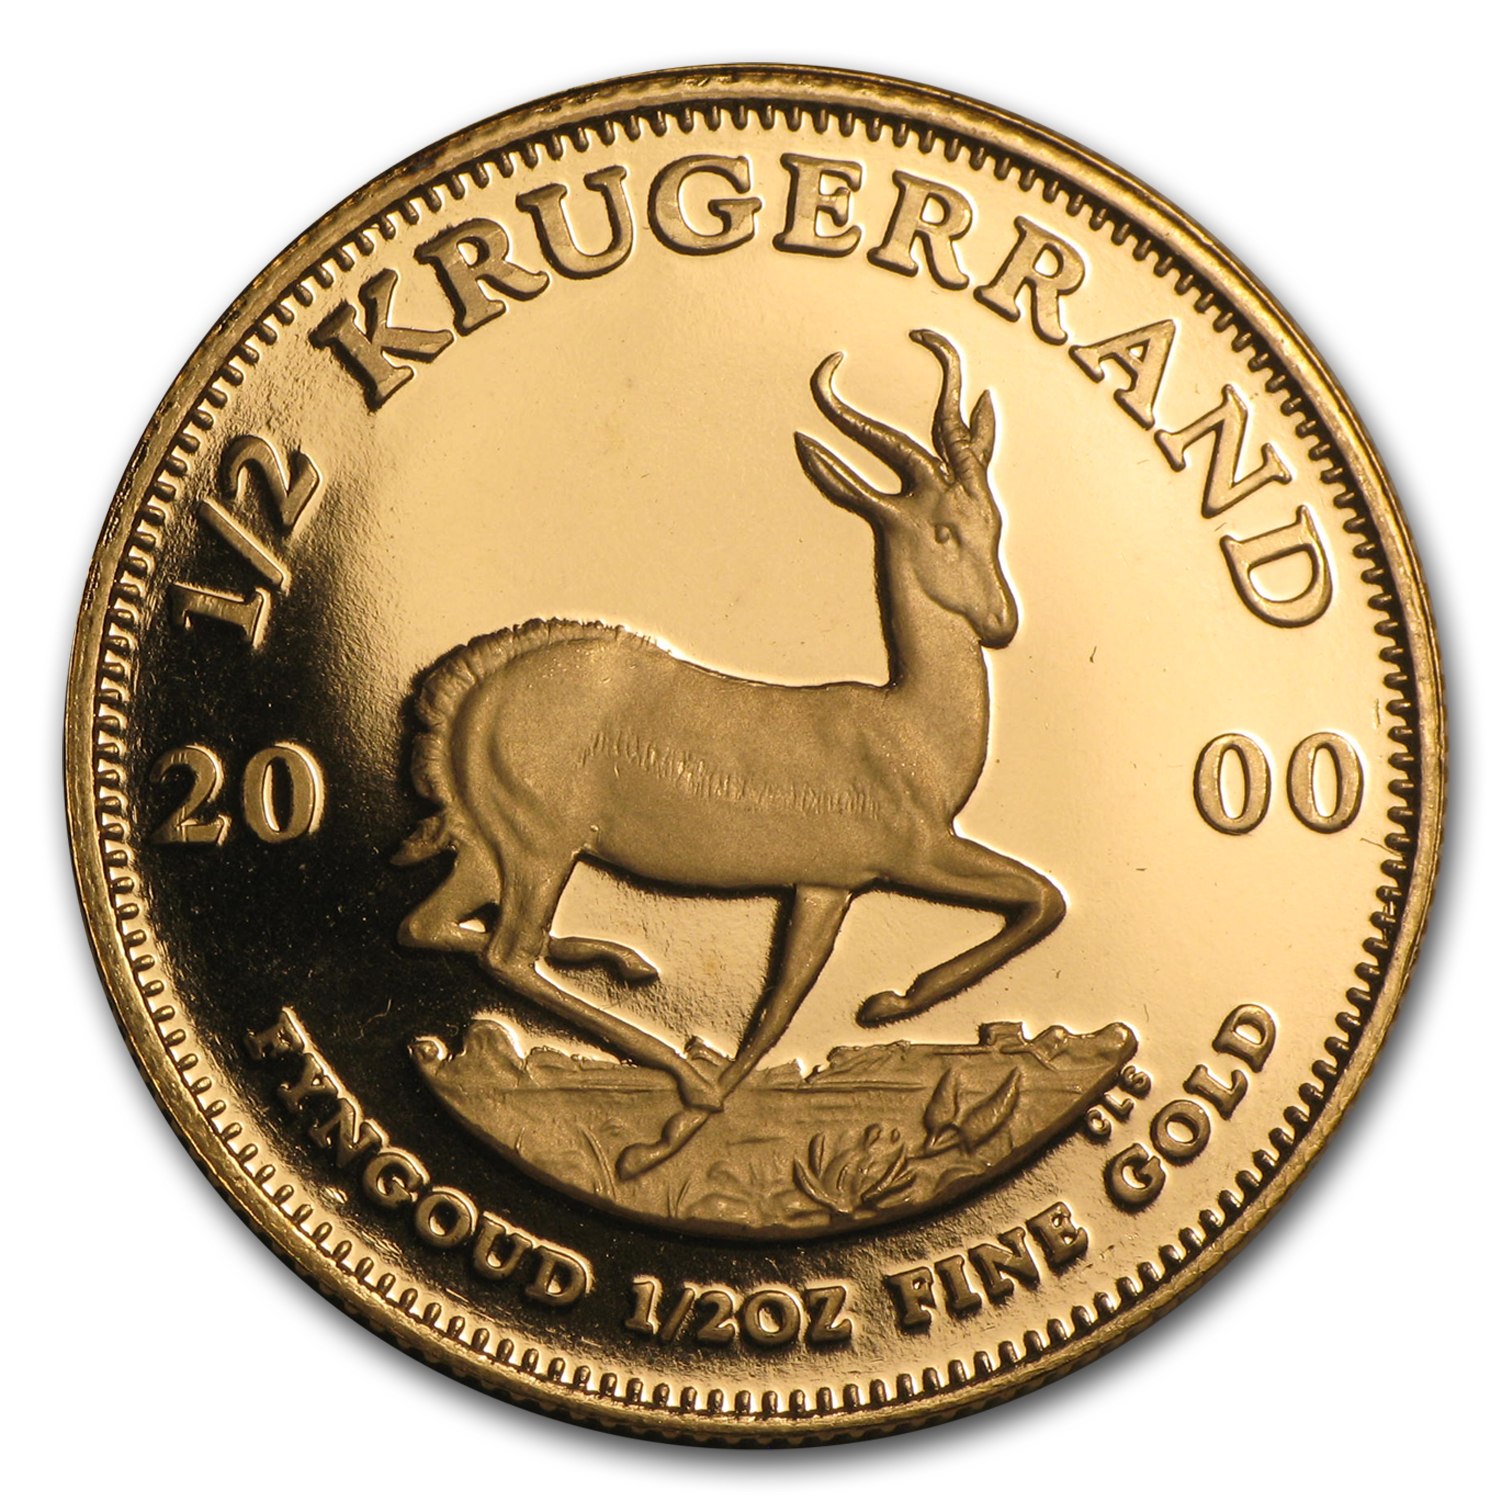 2000 1/2 oz Gold South African Krugerrand (Proof)